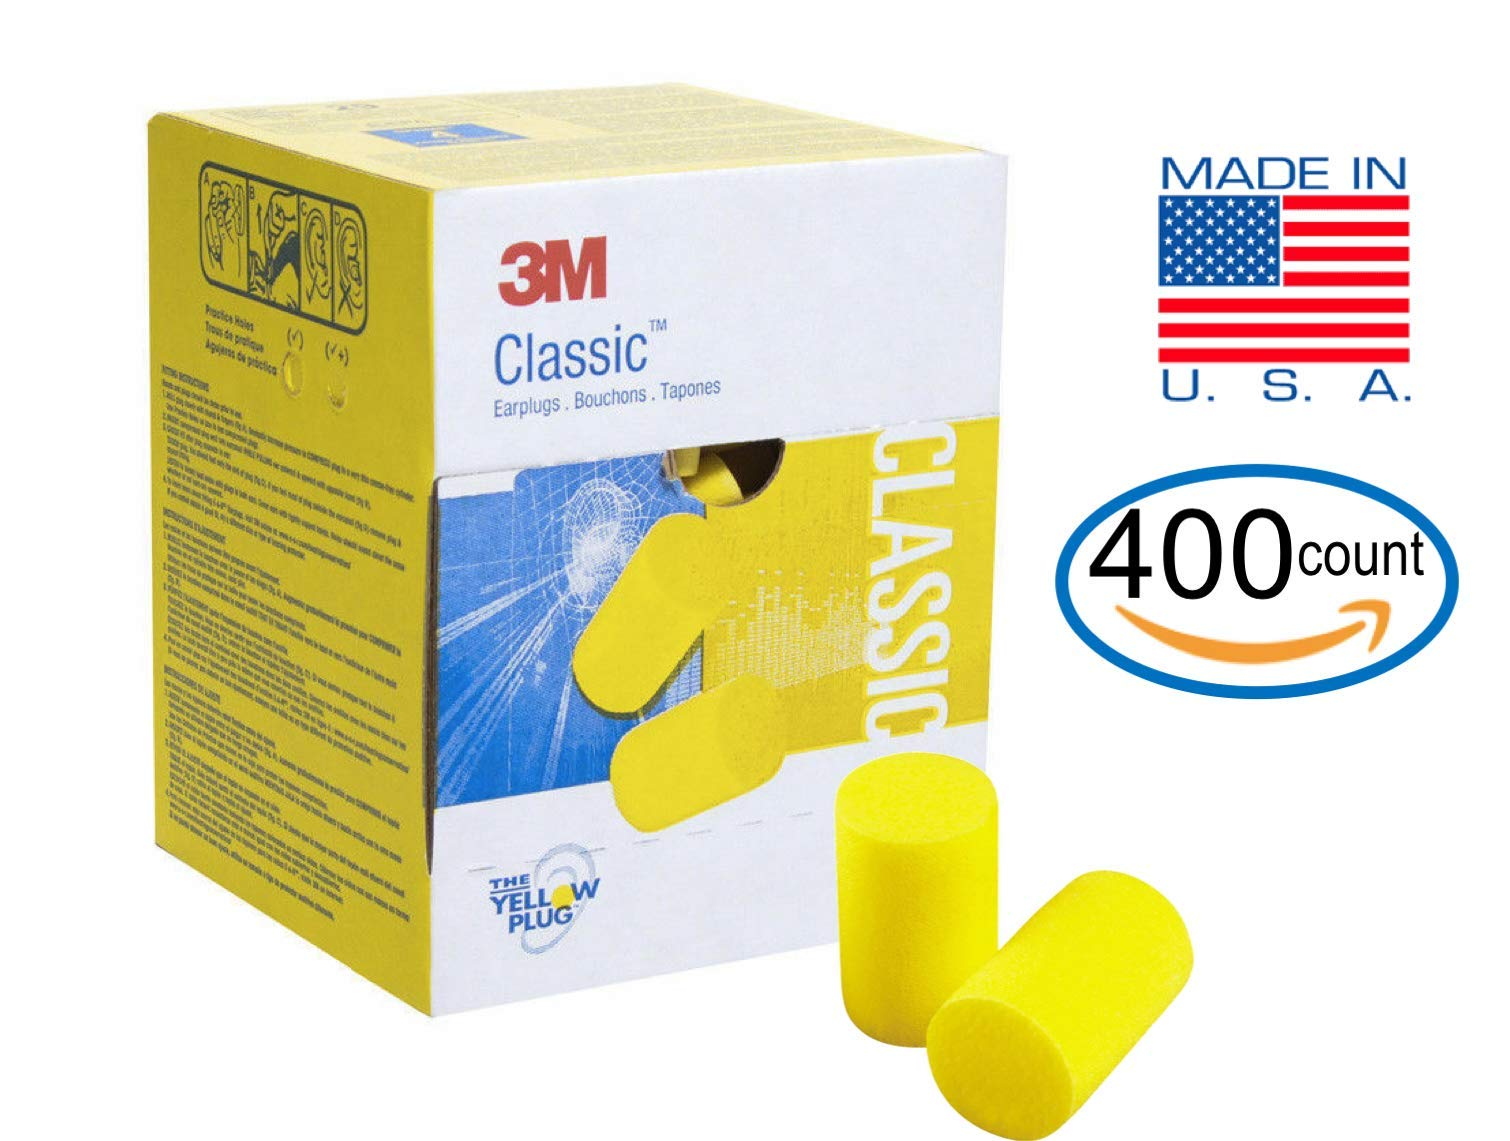 3M Classic Earplugs 200 Pair (400 Count) in Bulk Value Pack, E.A.R Foam Ear Plugs